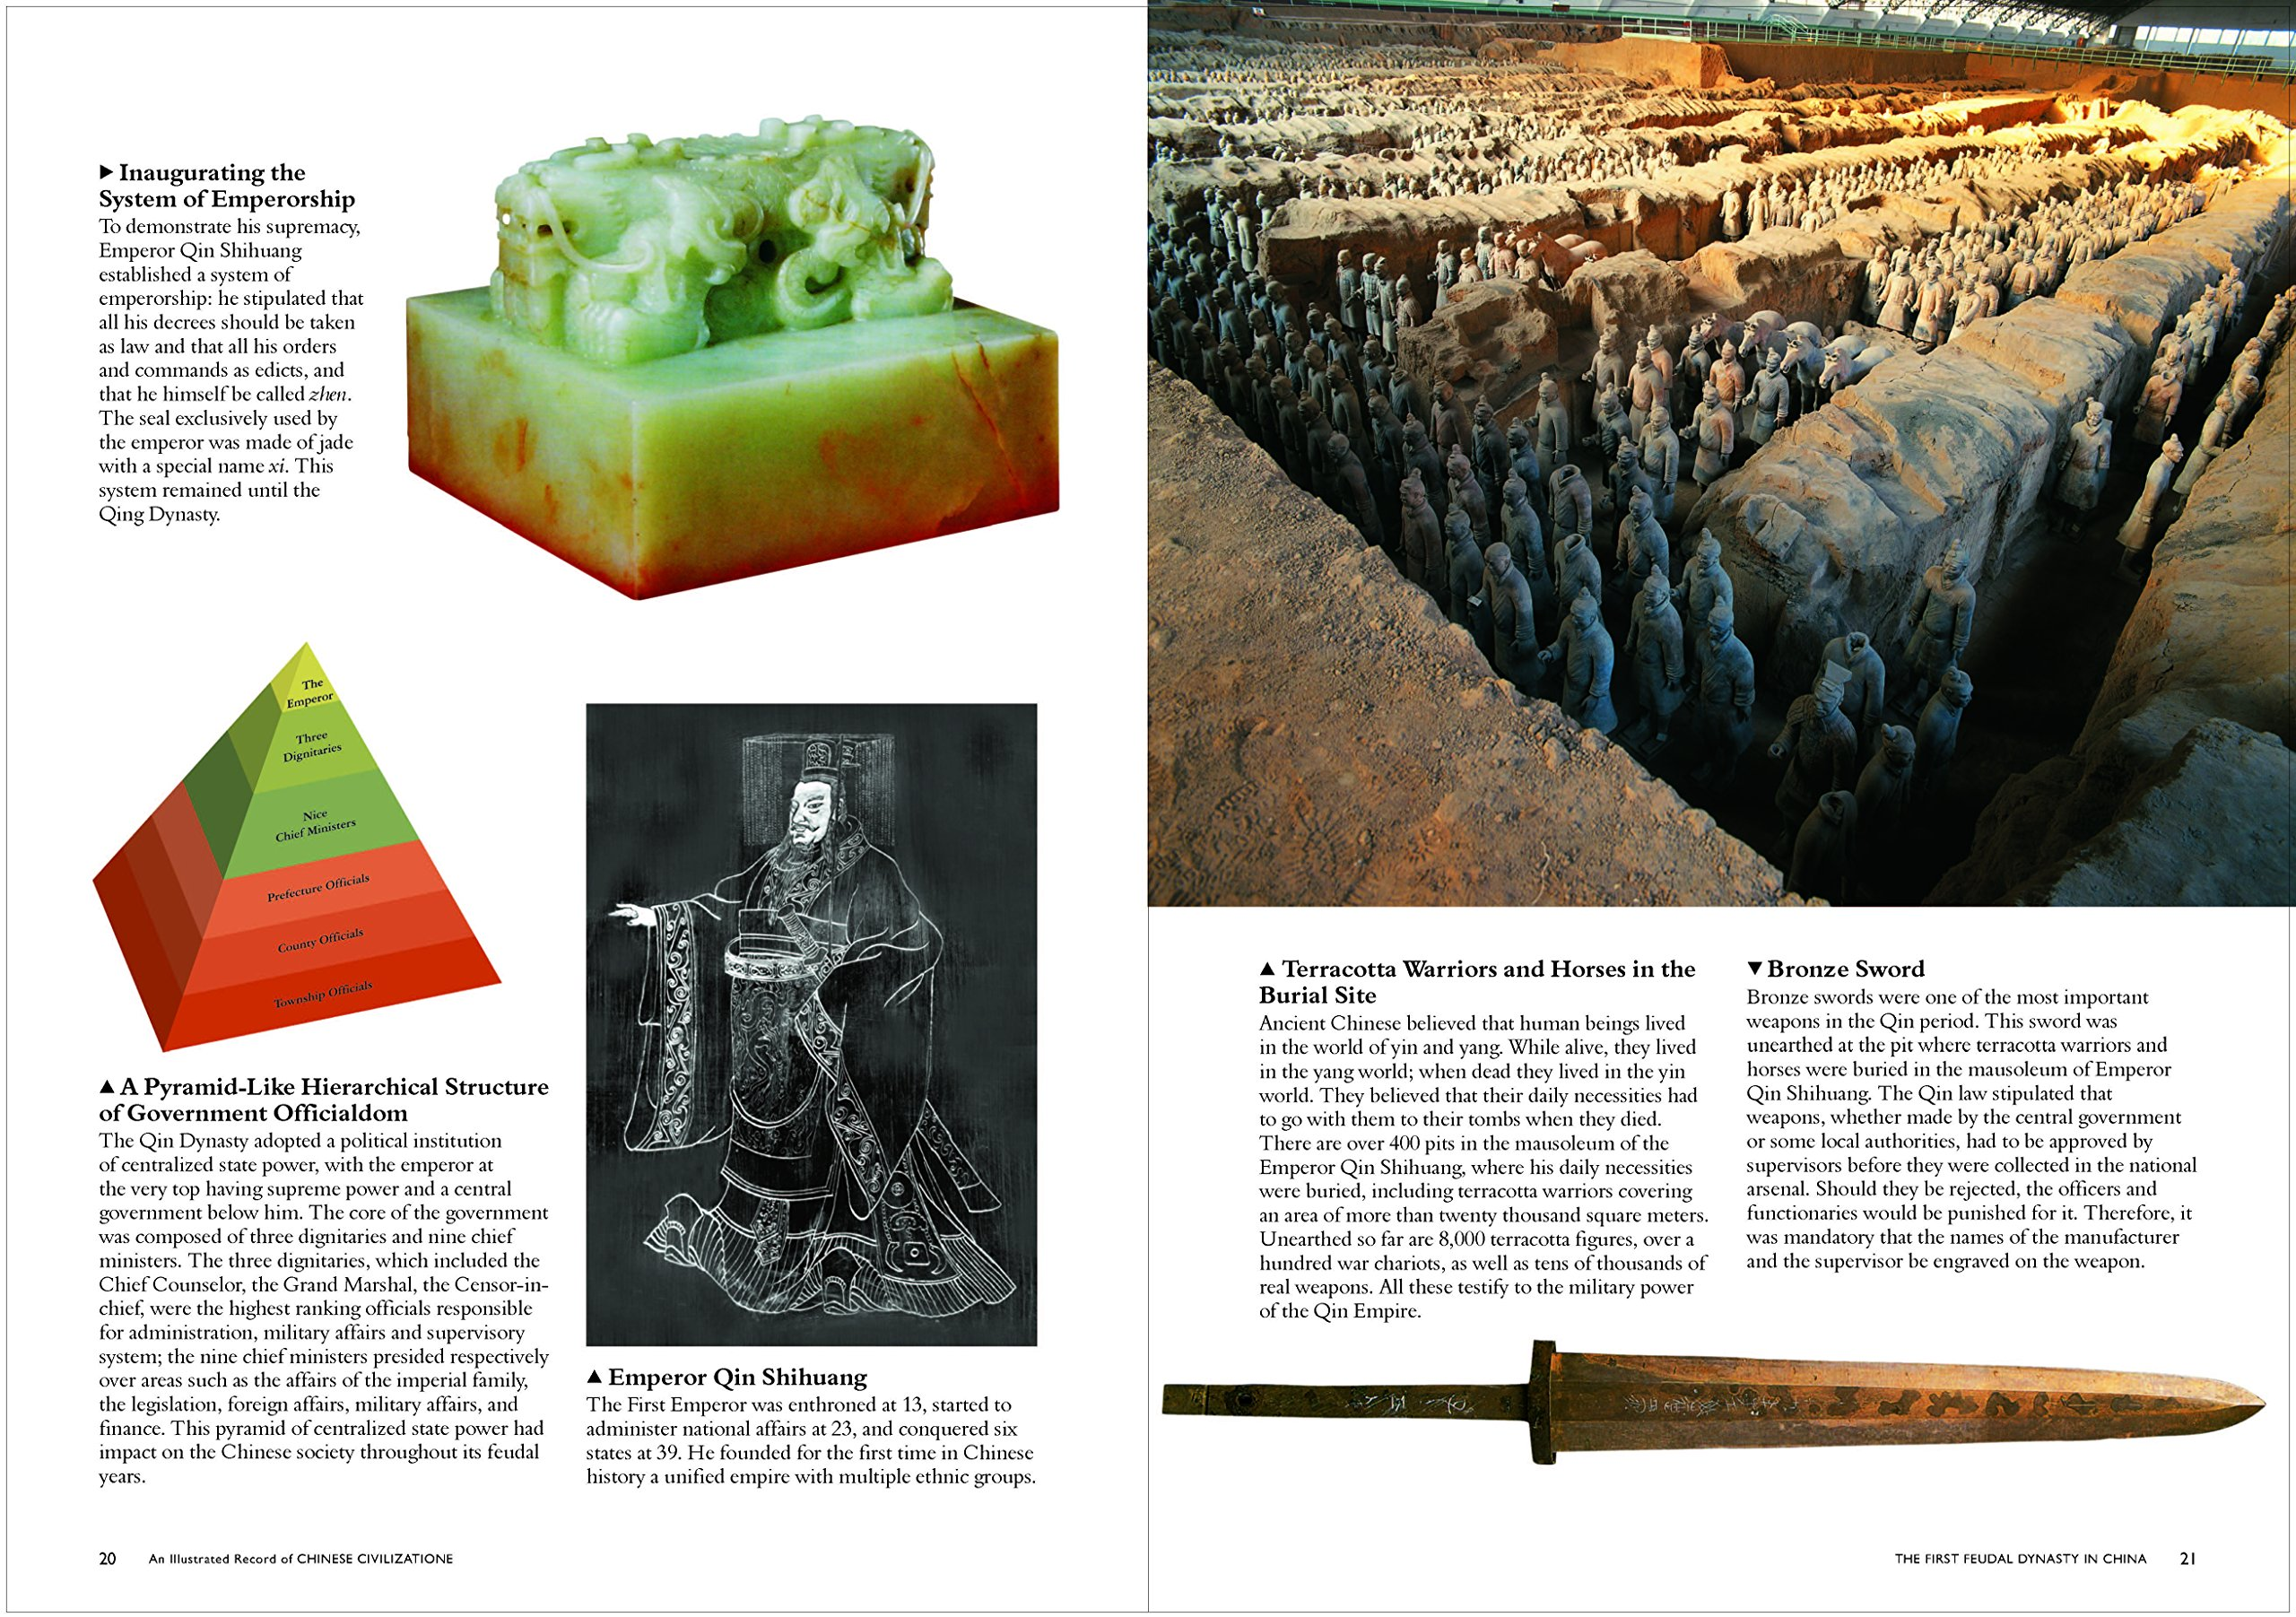 an illustrated brief history of china culture religion art